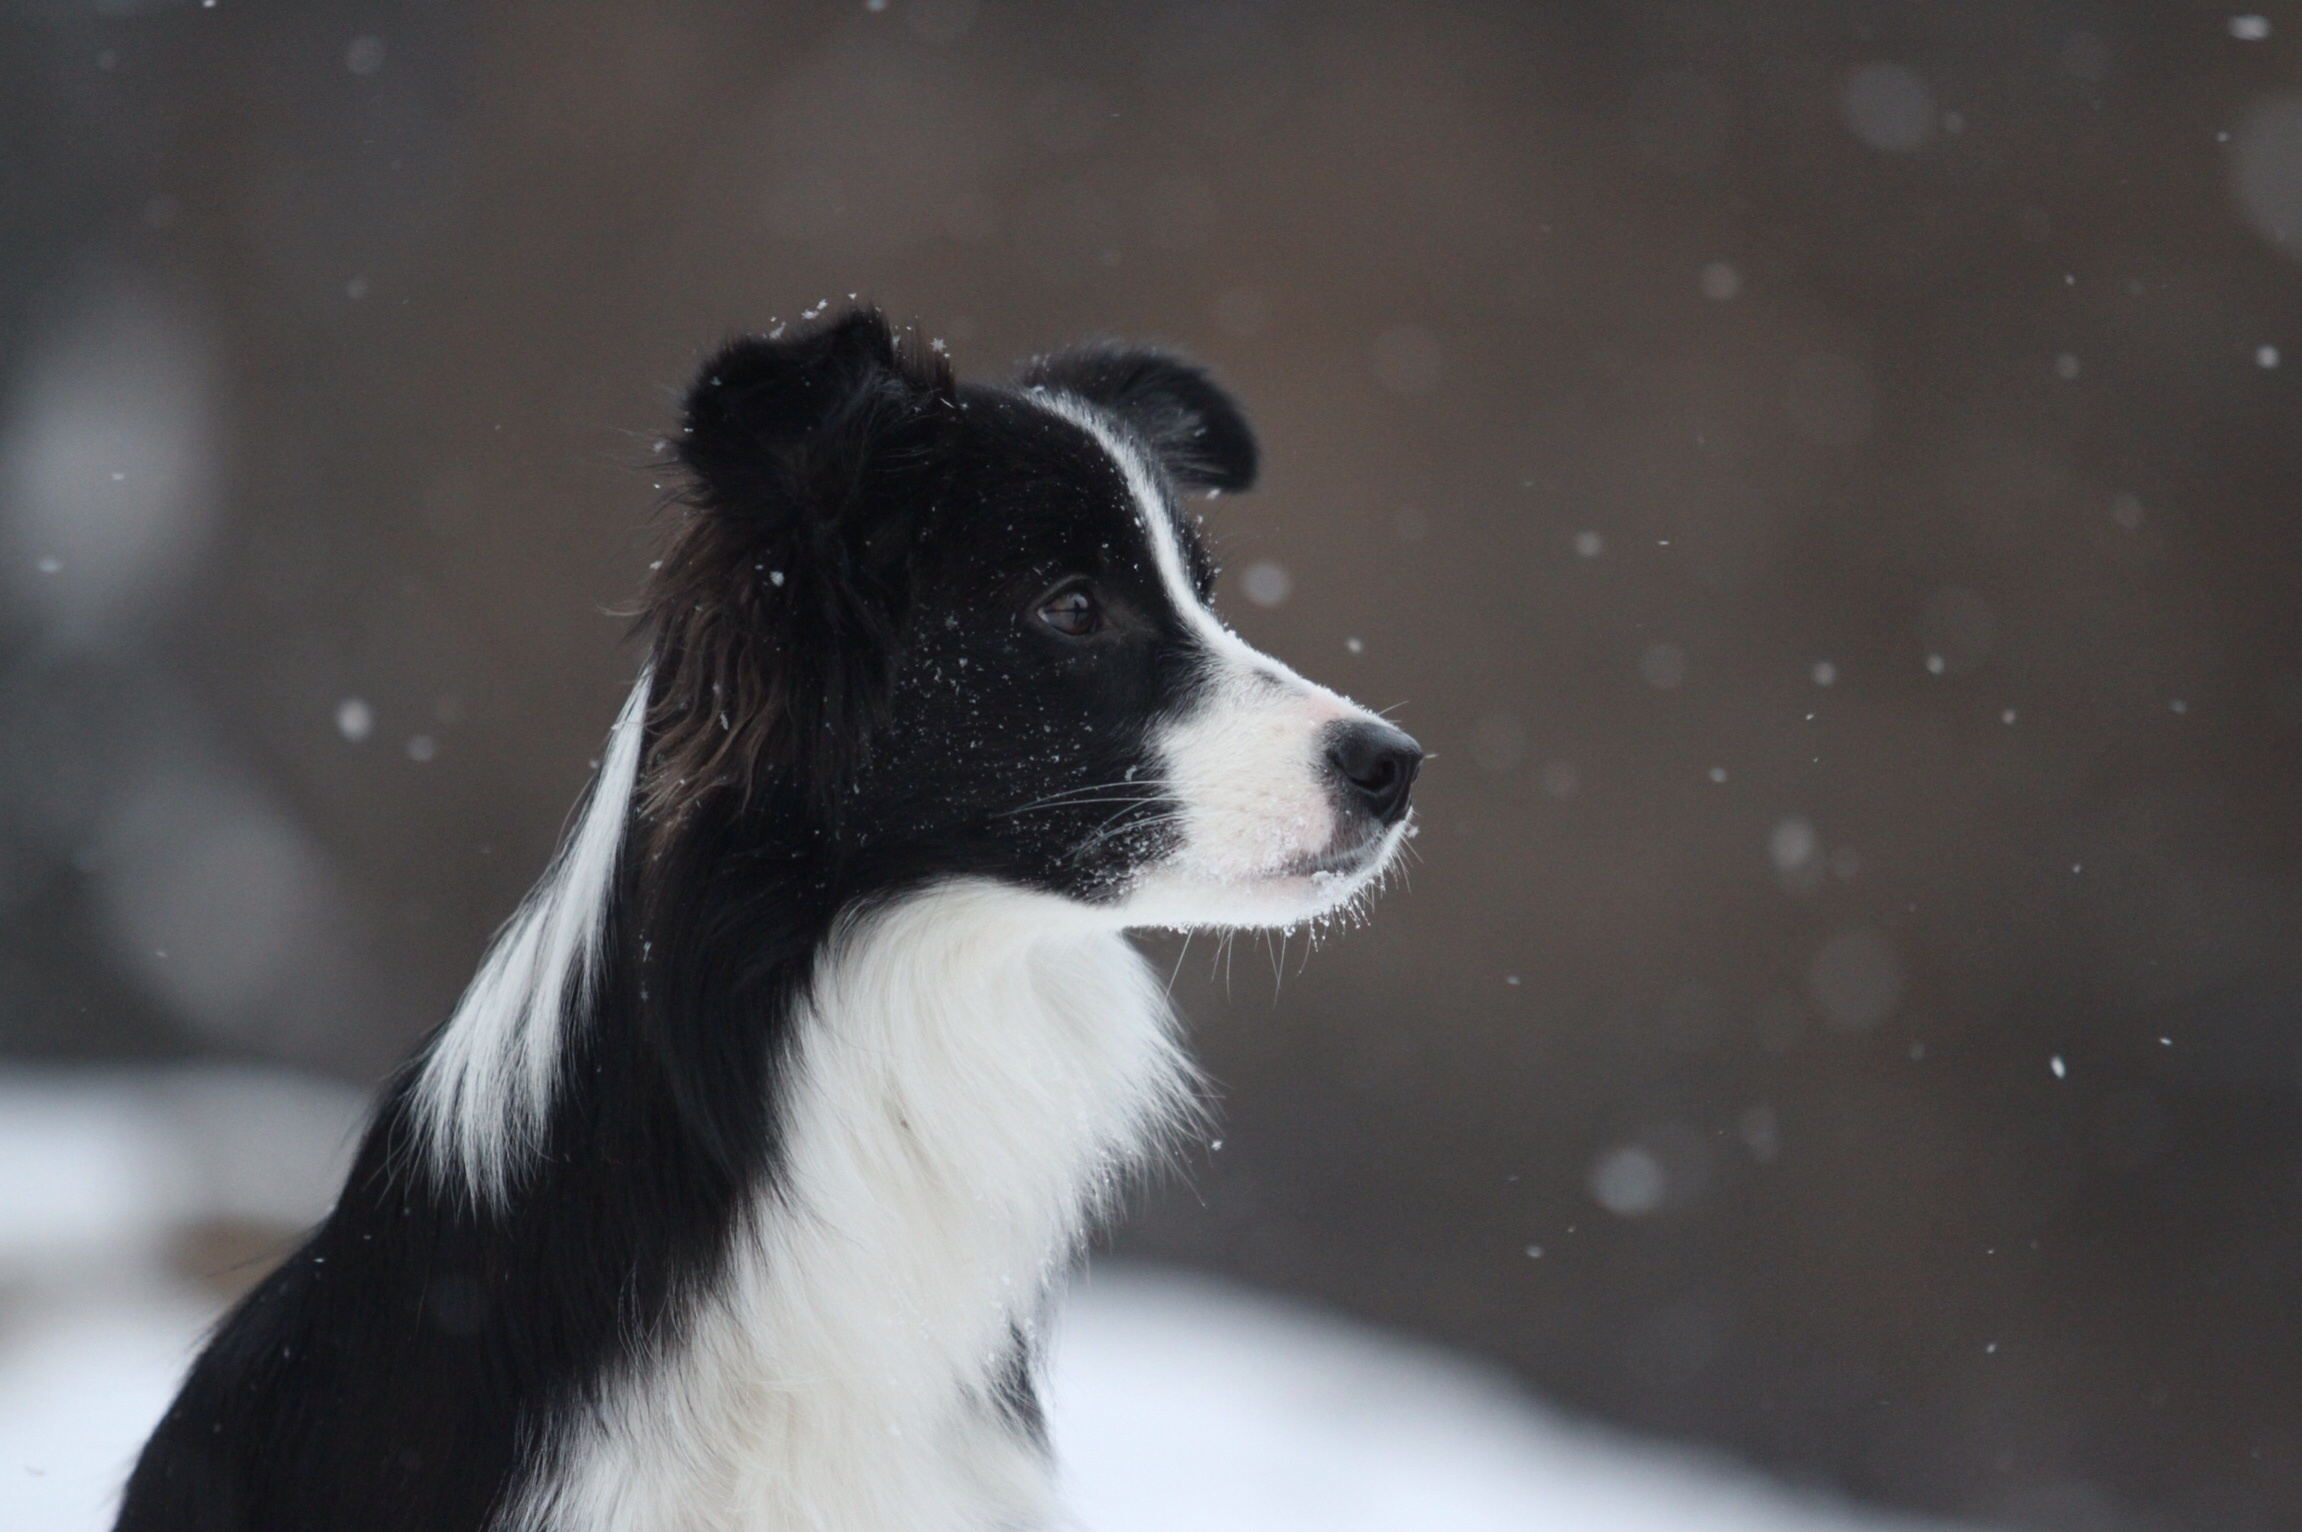 134925 download wallpaper Animals, Border Collie, Dog, Spotted, Snow screensavers and pictures for free